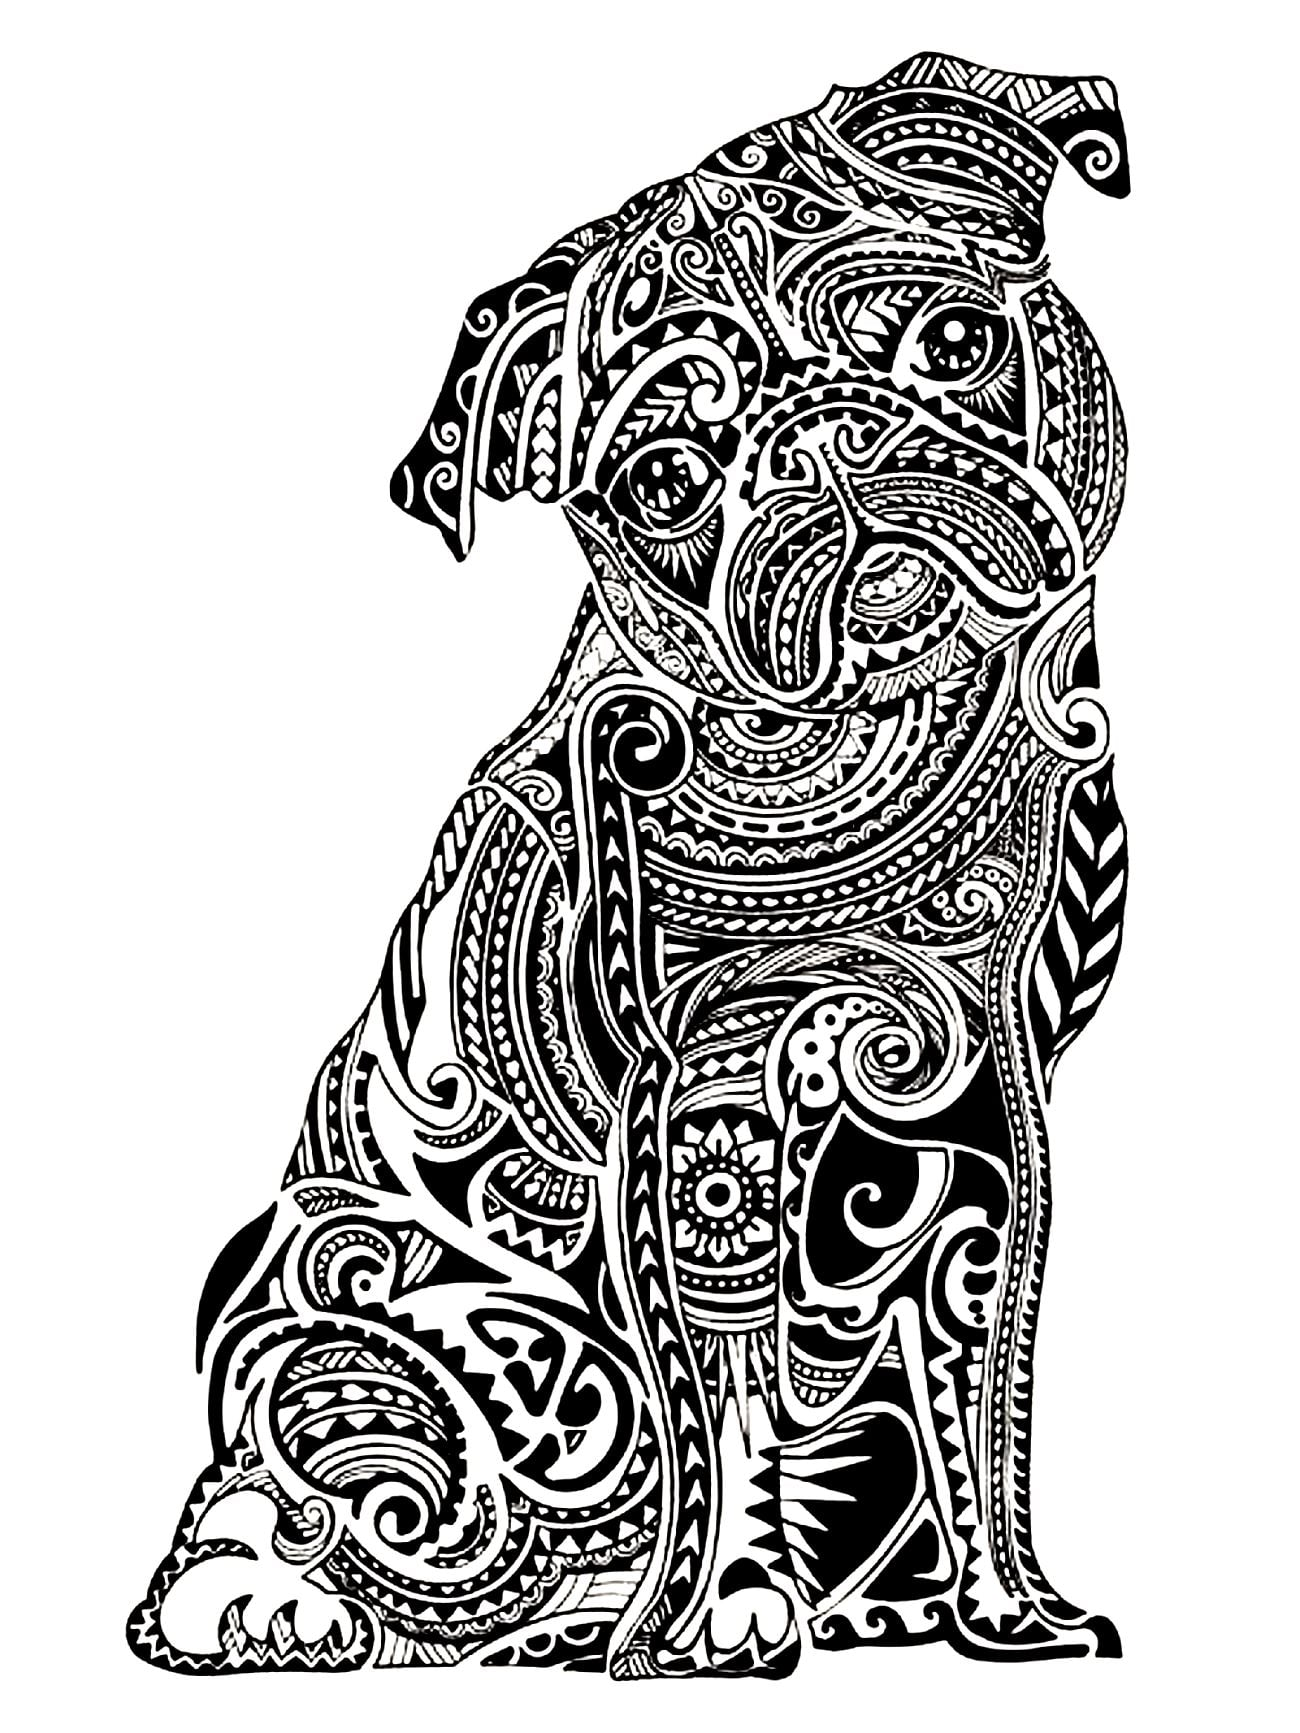 Get The Coloring Page Pug 50 Printable Adult Coloring